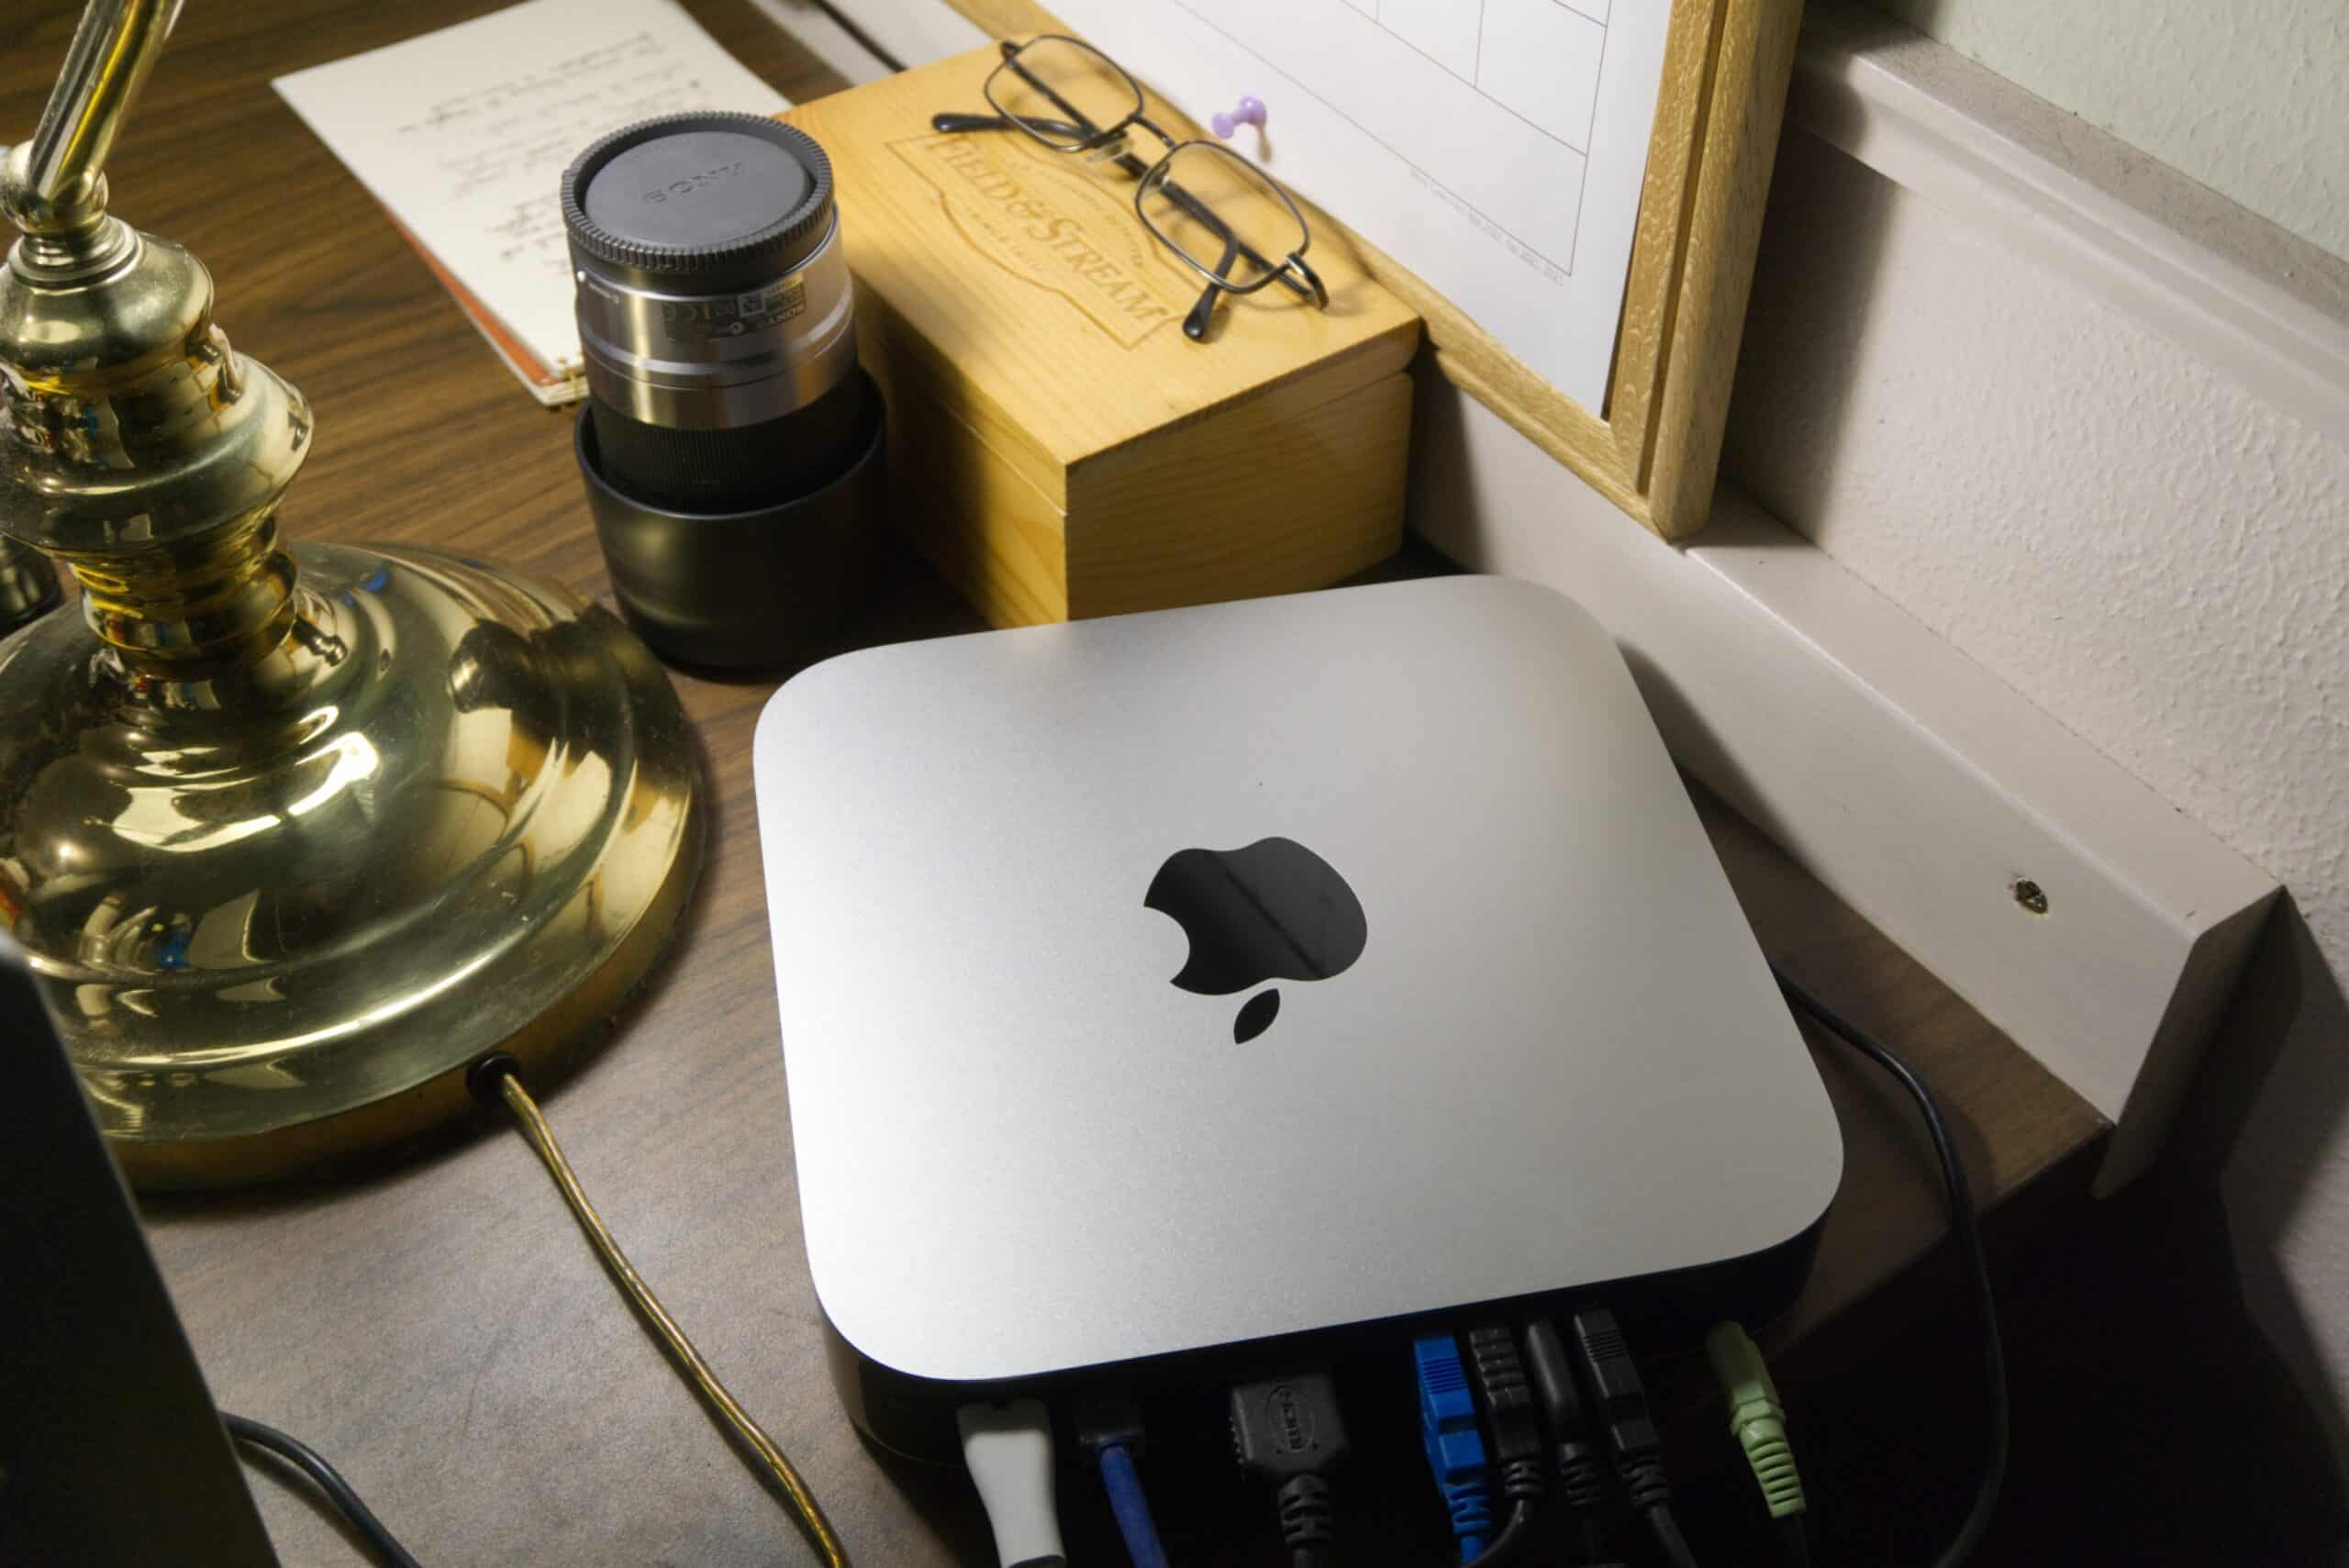 M1 Mac Mini makes Apple #1 Desktop PC maker in Japan